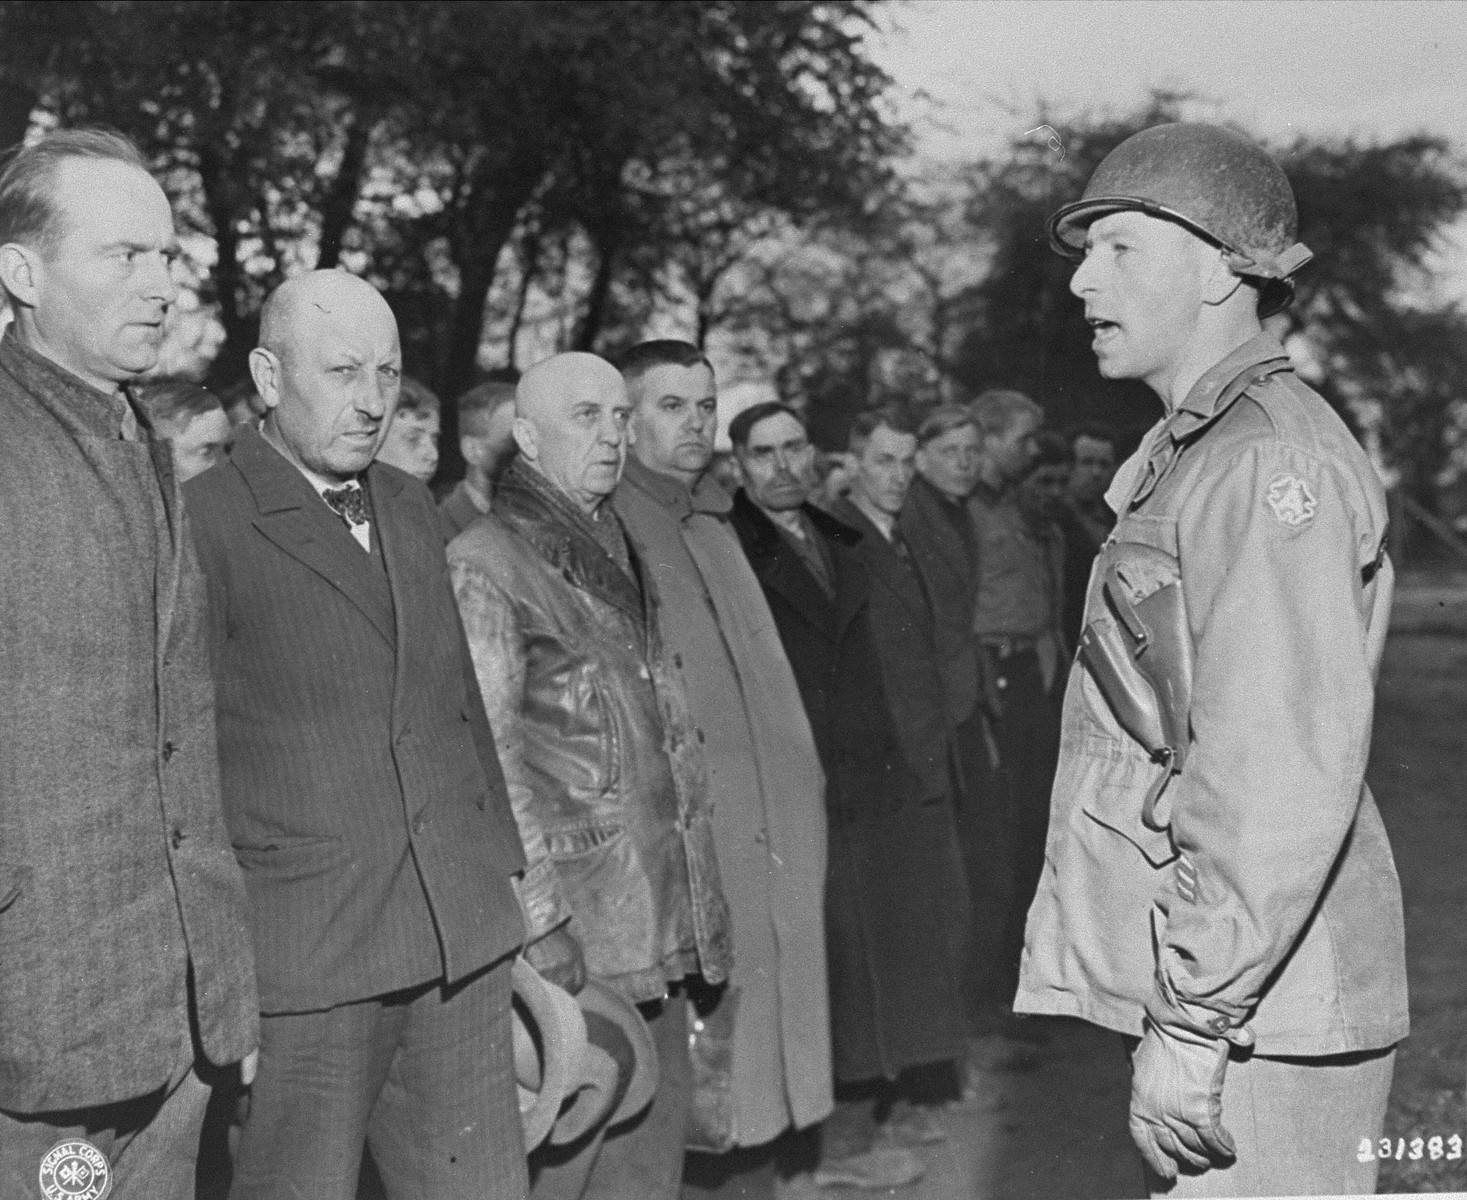 "An American officer speaks to new German prisoners upon their arrival at the Recklinghausen internment camp, which was established by the U.S. Ninth Army.  When U.S. Ninth Army troops captured the concentration camp for Soviet civilians located near Recklinghausen, Germany, they converted it into a separation center for prisoners of war and war criminals.  After the first German prisoners arrived at the camp they were sent to the interrogation department, which was supervised by Captain Harold Puttfer and Lieutenant H. Goodman.  The camp had three sections called ""cages.""  One of these was for women, another for persons incarcerated for minor offenses, and the third for hardened criminals.  All three sections were filled to capacity, totalling 20,000 prisoners."